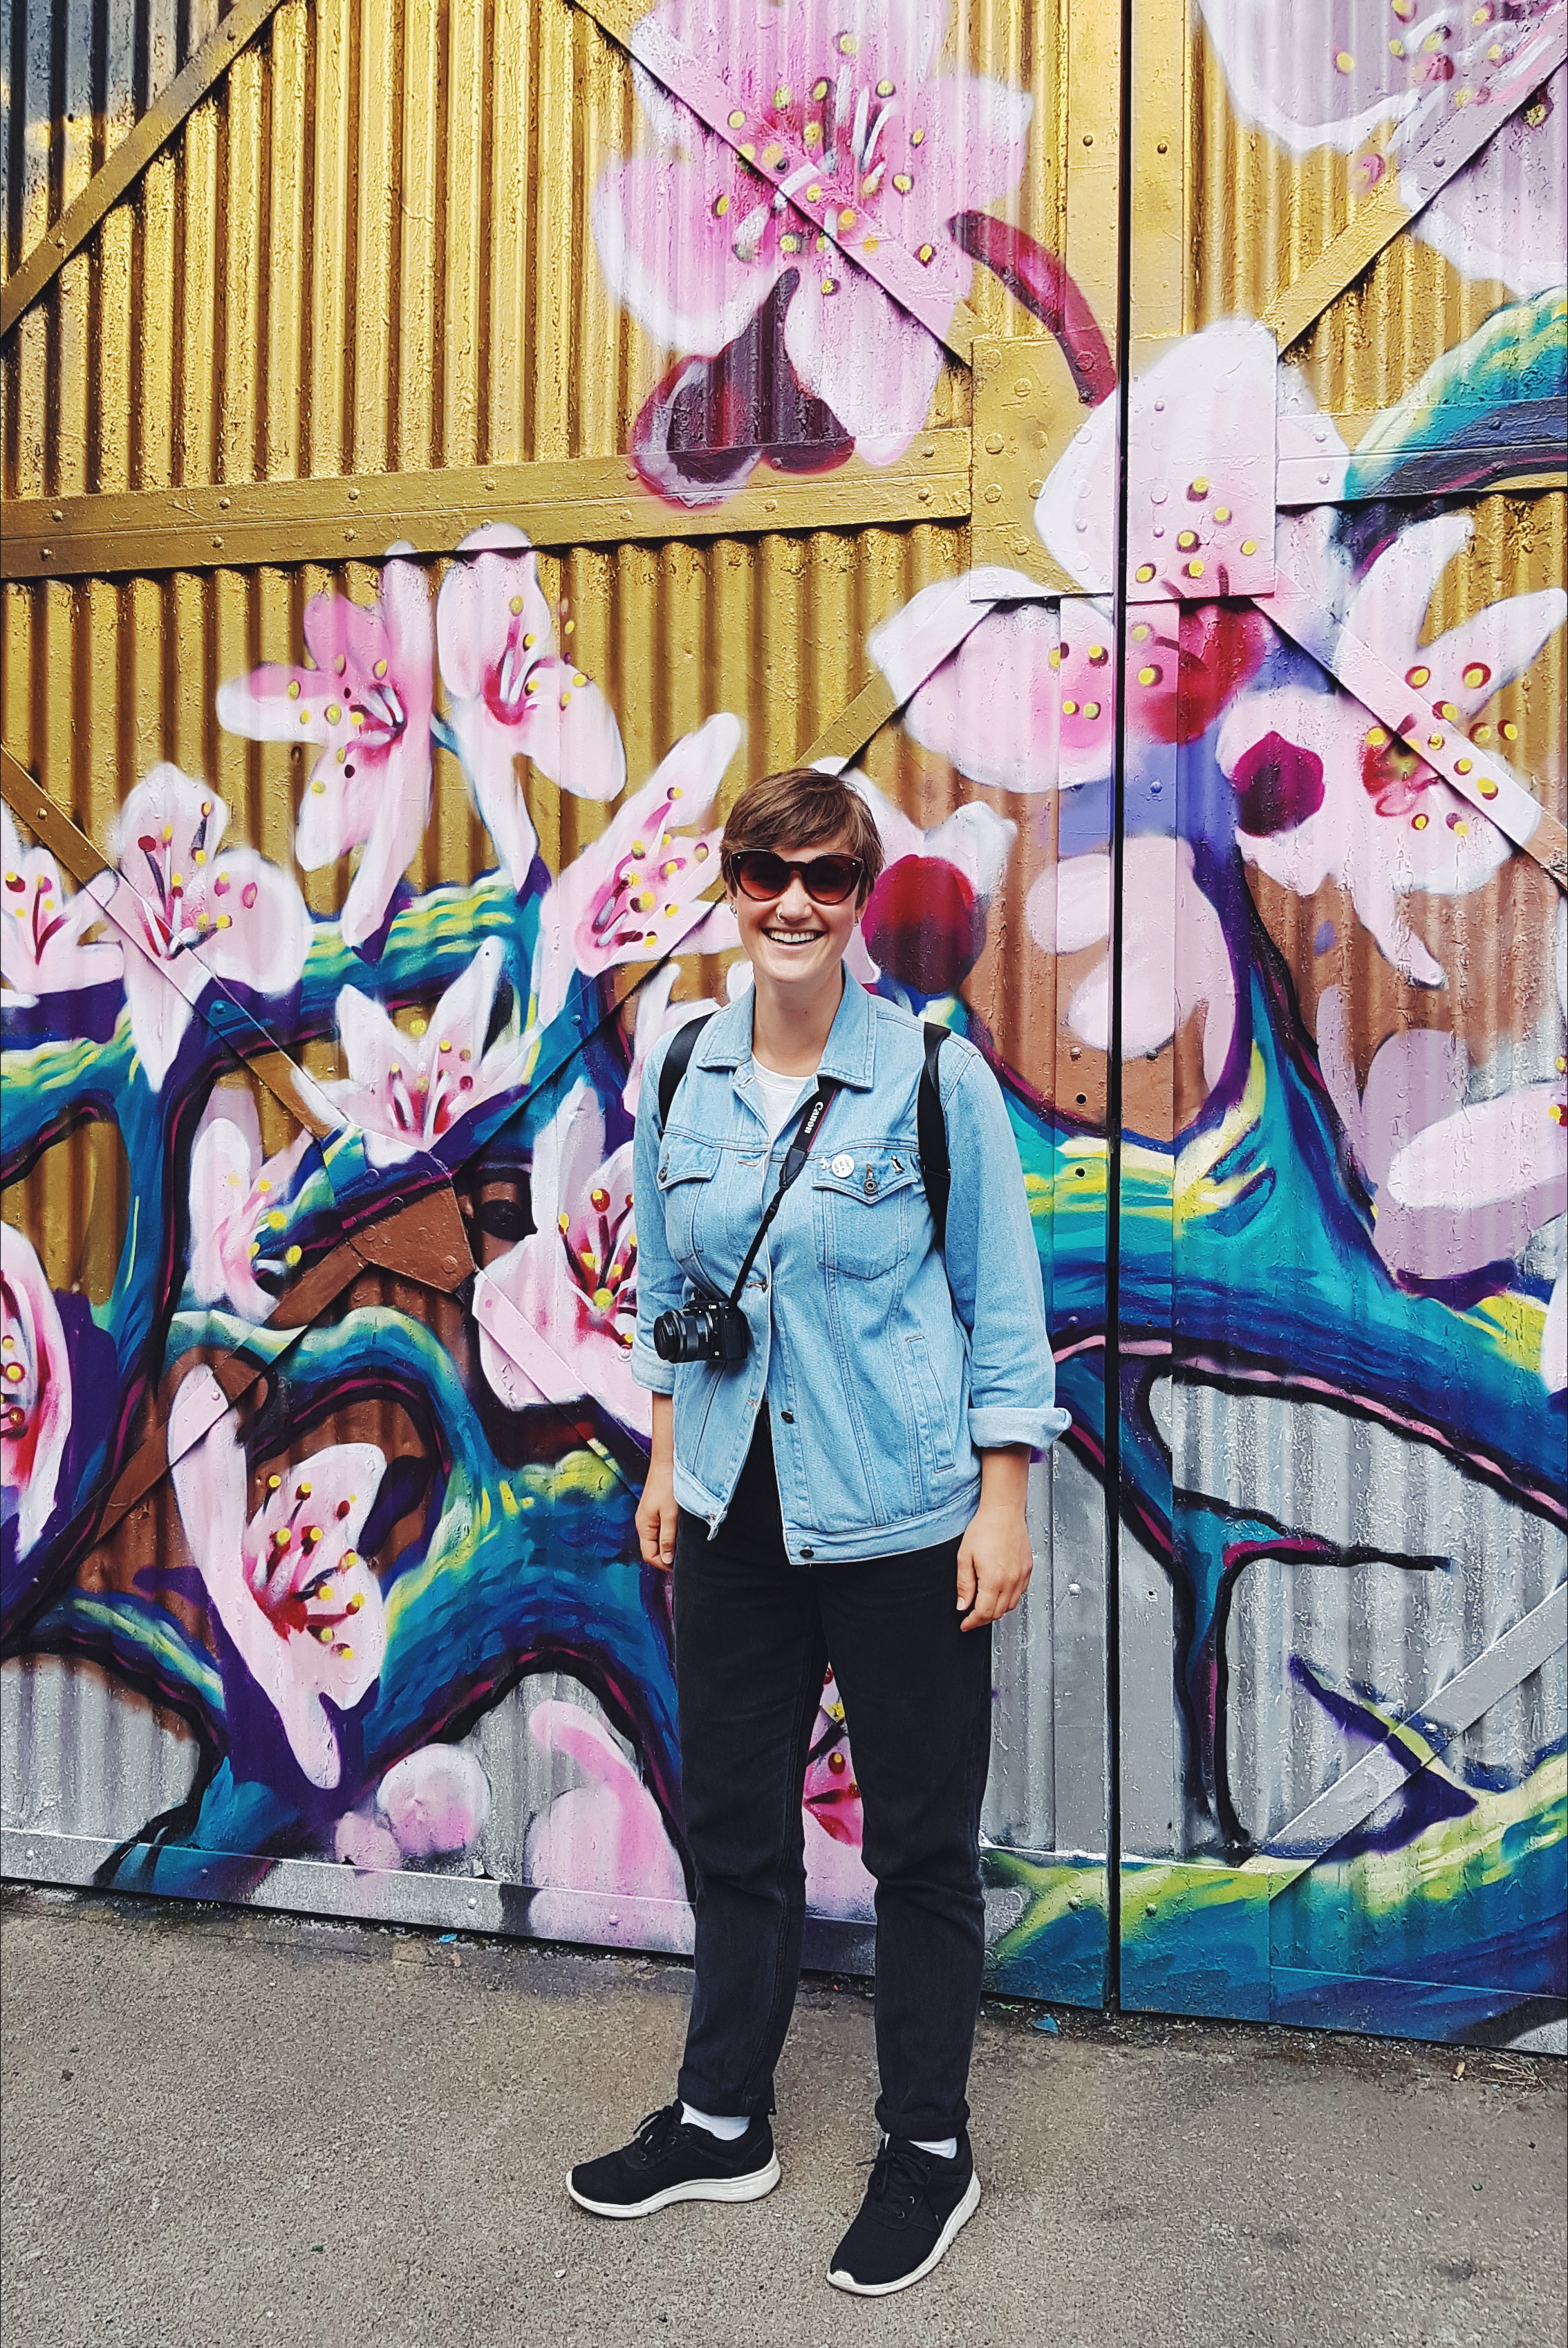 """""""Glasgow is such a culturally rich city,"""" Kathi says. """"Lots of film festivals, music festivals. I really like the   Glasgow International  , which happens every two years in April. That's an art and performance festival."""" Kathi has also started her own   feminist film festival, Femspectives  ."""